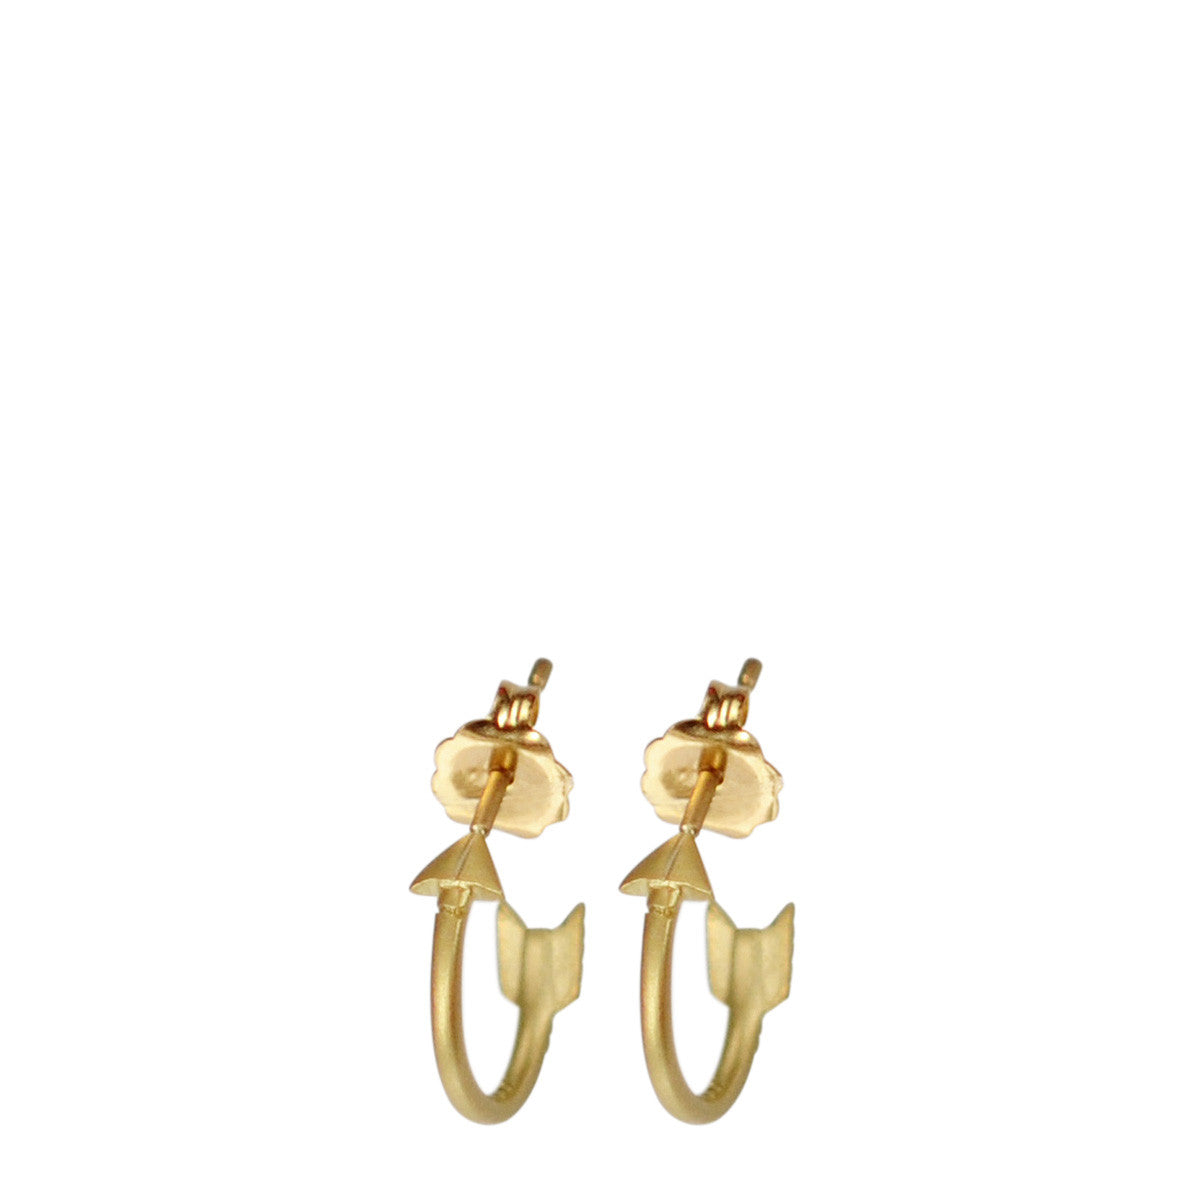 18K Gold Arrow Hoop Earrings